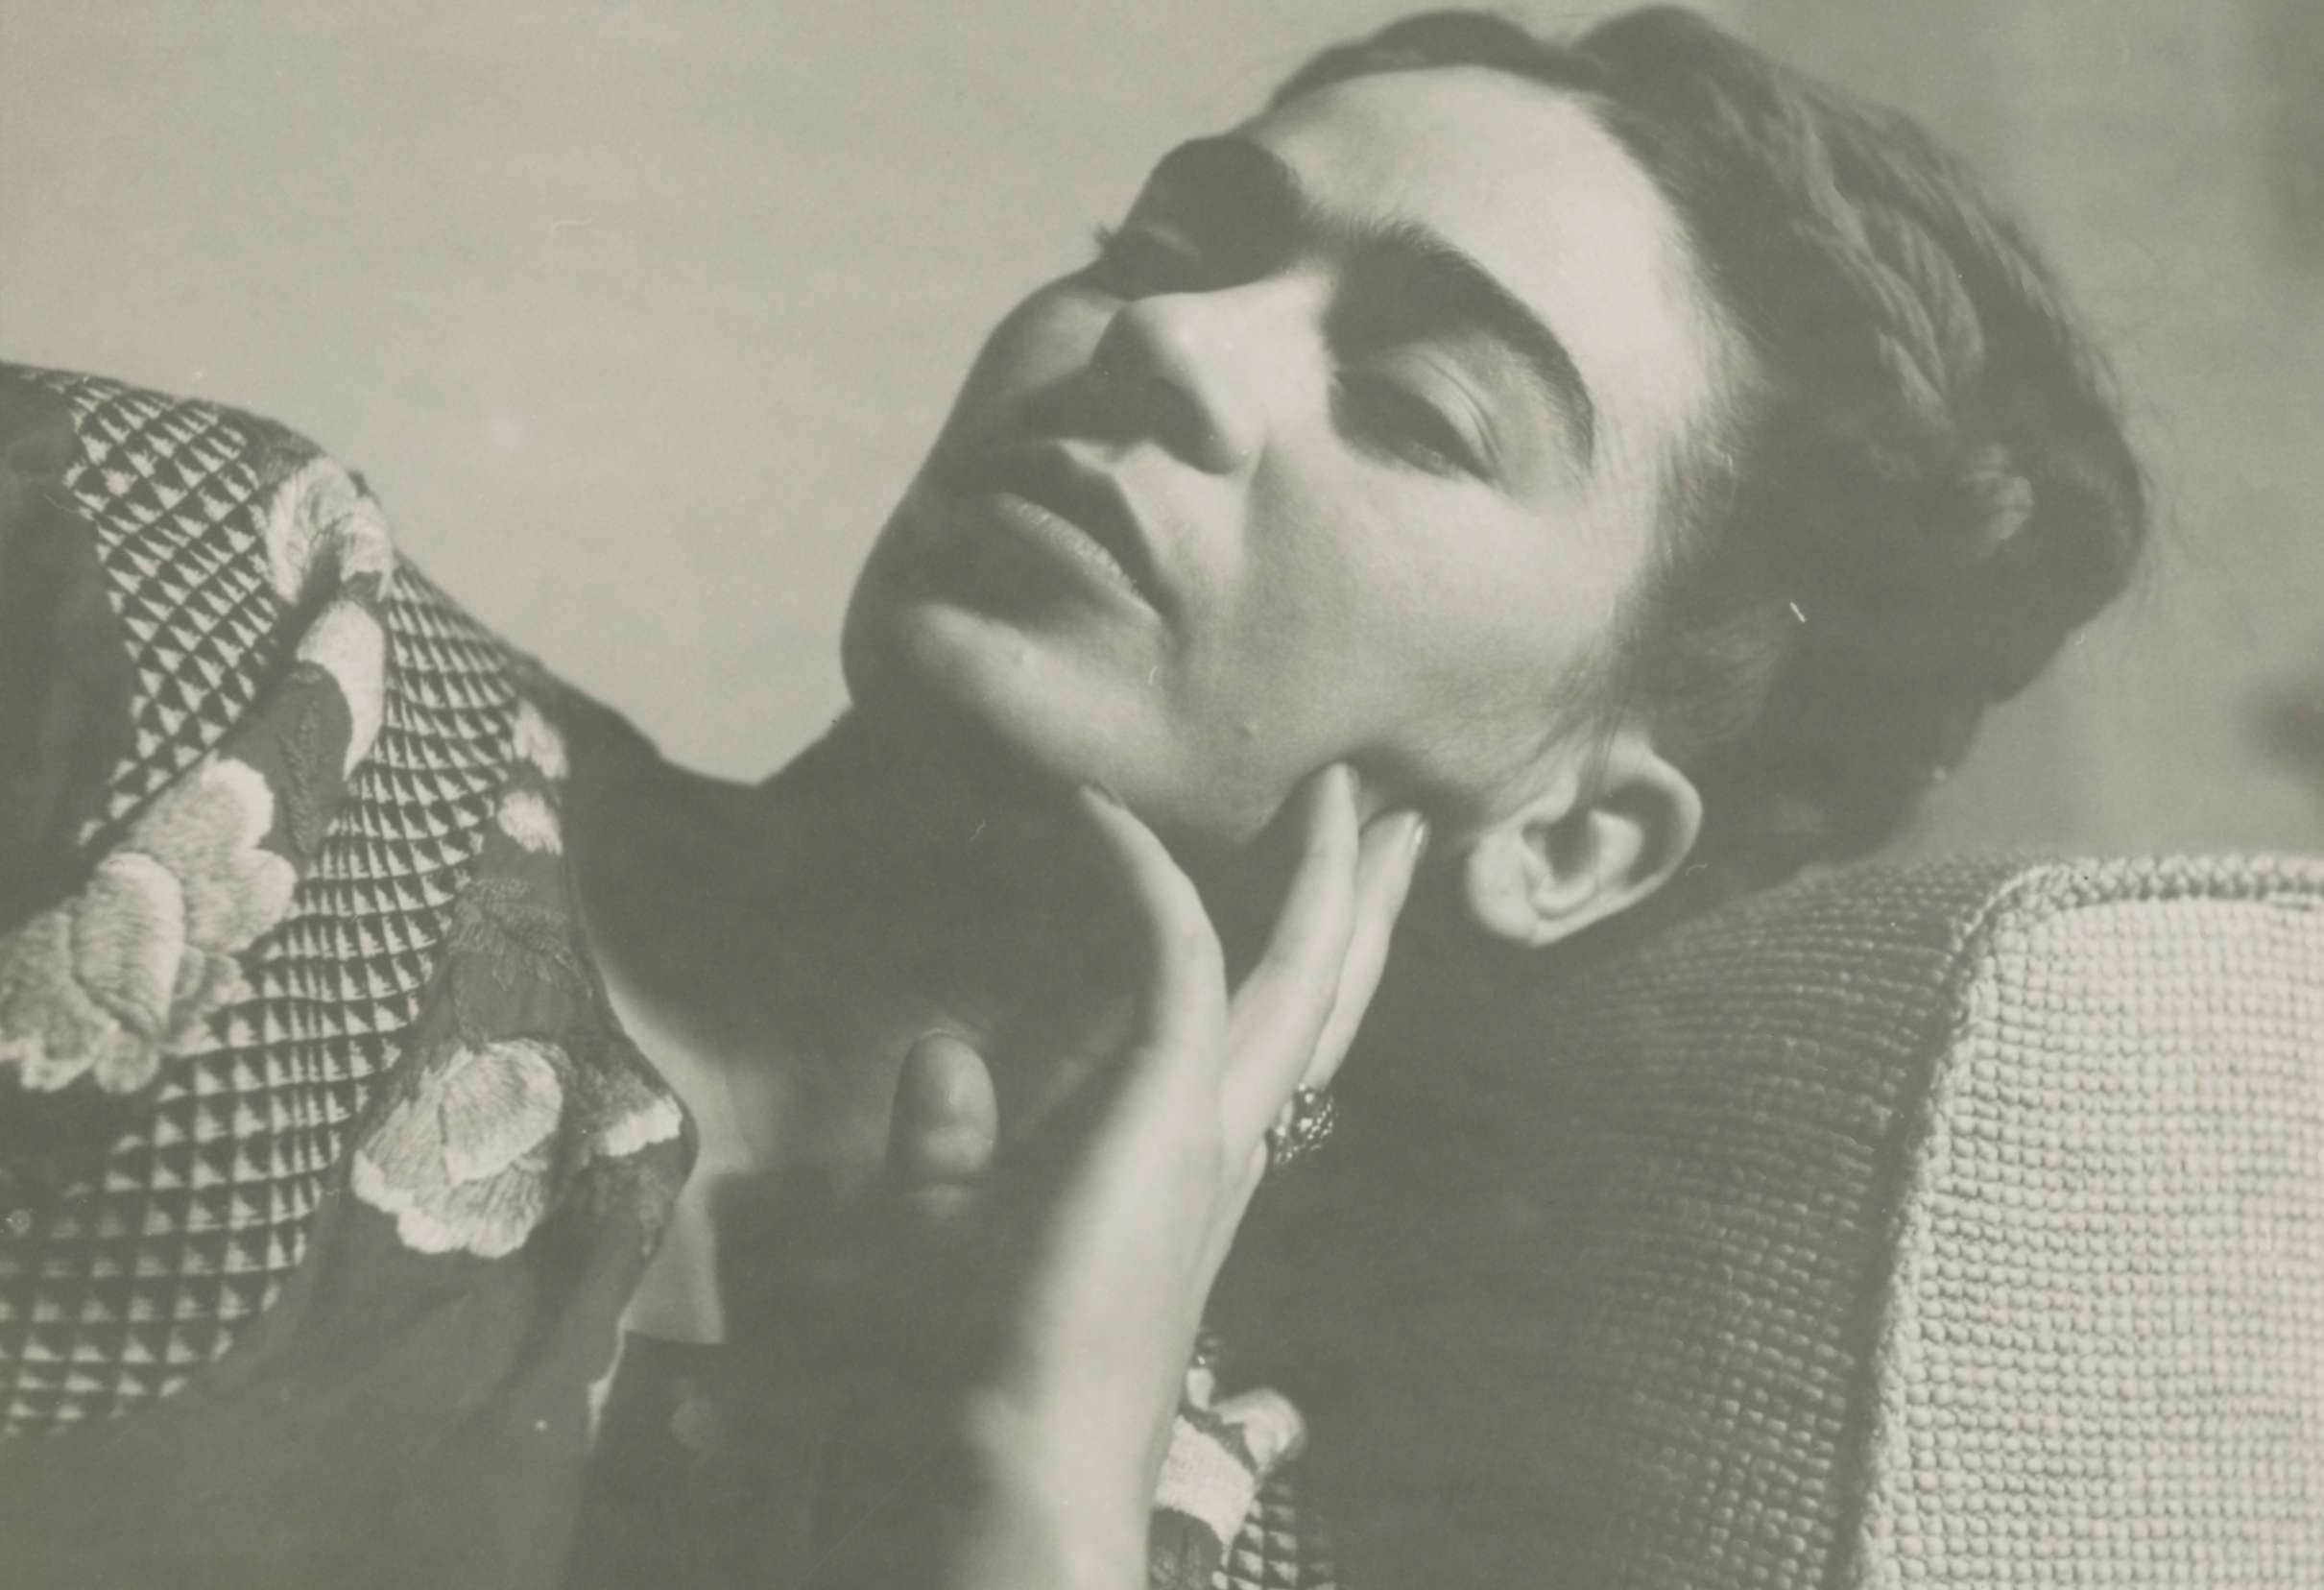 THROCKMORTON-Anonymous-image-of-FRIDA-KAHLO-RESTING-1943-gelatin-silver-print-4.5x6